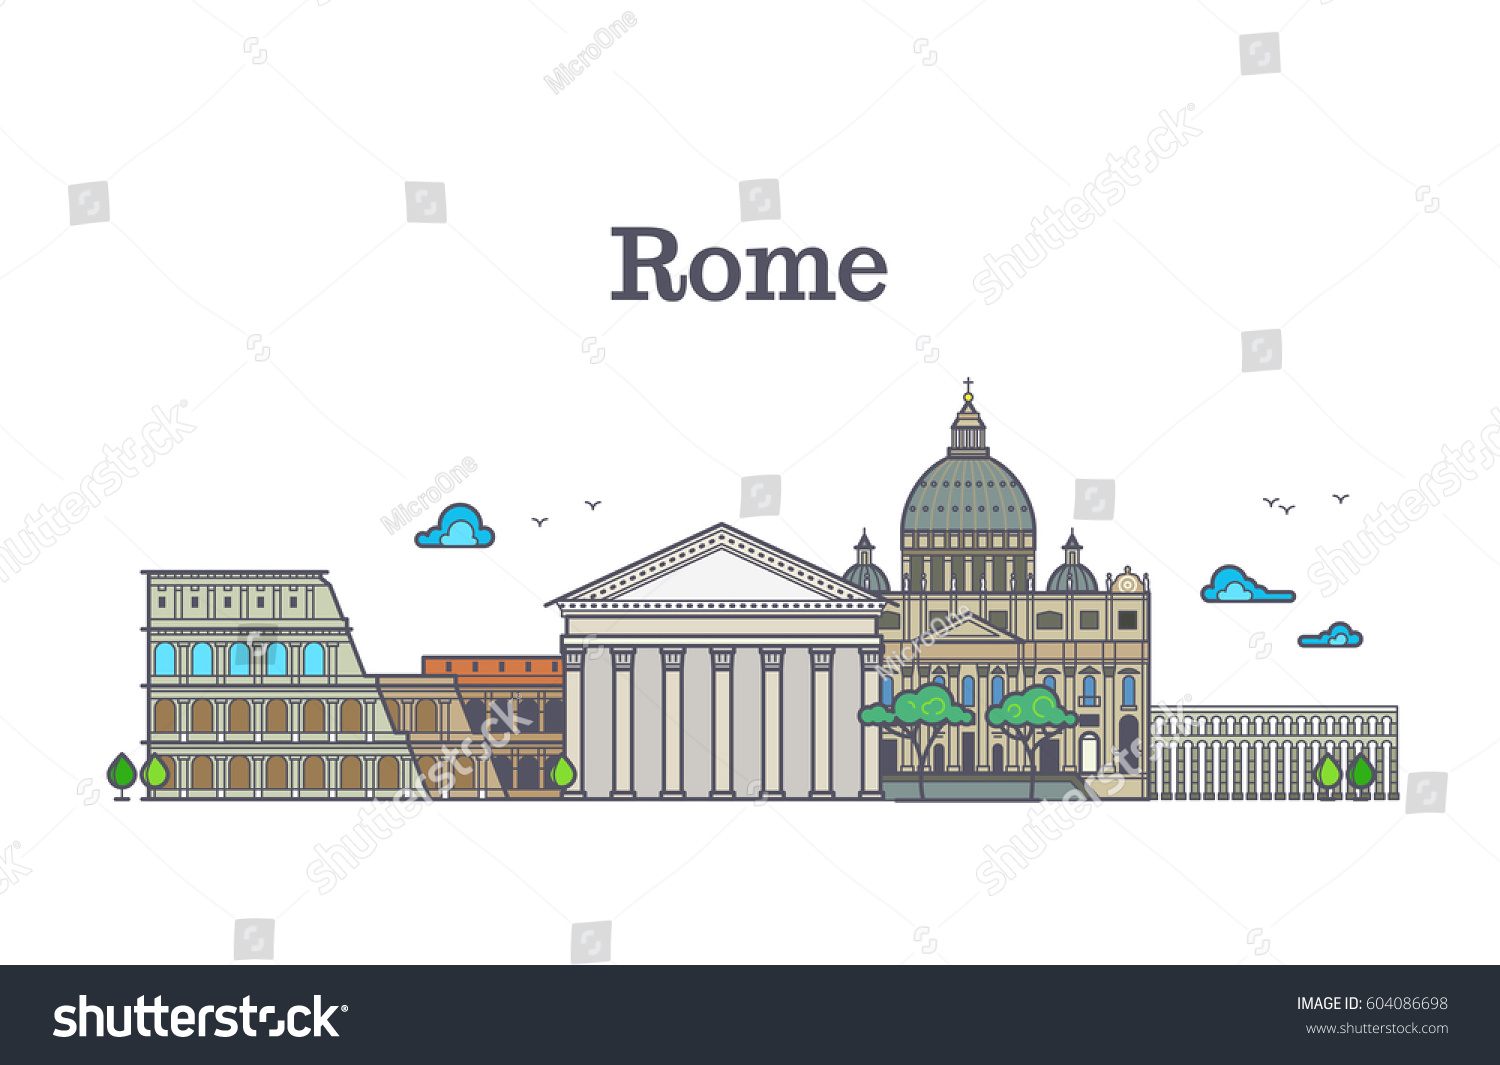 an analysis of the romes architecture an the concept of building rome As the oldest roofed building, the pantheon is an eloquent expression of roman culture the colisseum of rome, orignially known as the flavian ampitheatre, is not so well preserved as the pantheon.